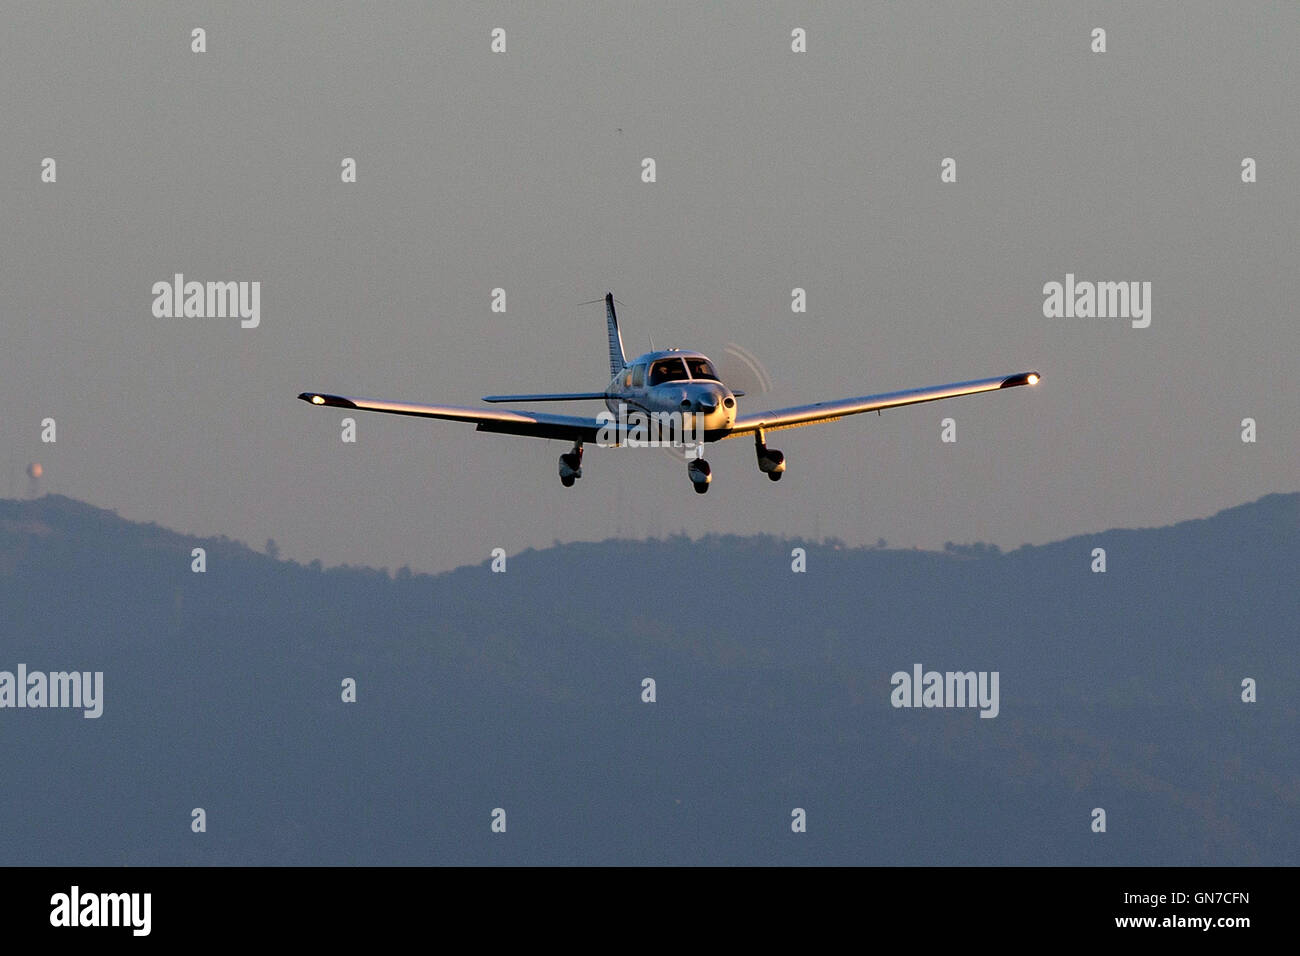 Piper PA-28-181 Cherokee (N651KC) lands at Palo Alto Airport (KPAO), Palo Alto, California, United States of America - Stock Image